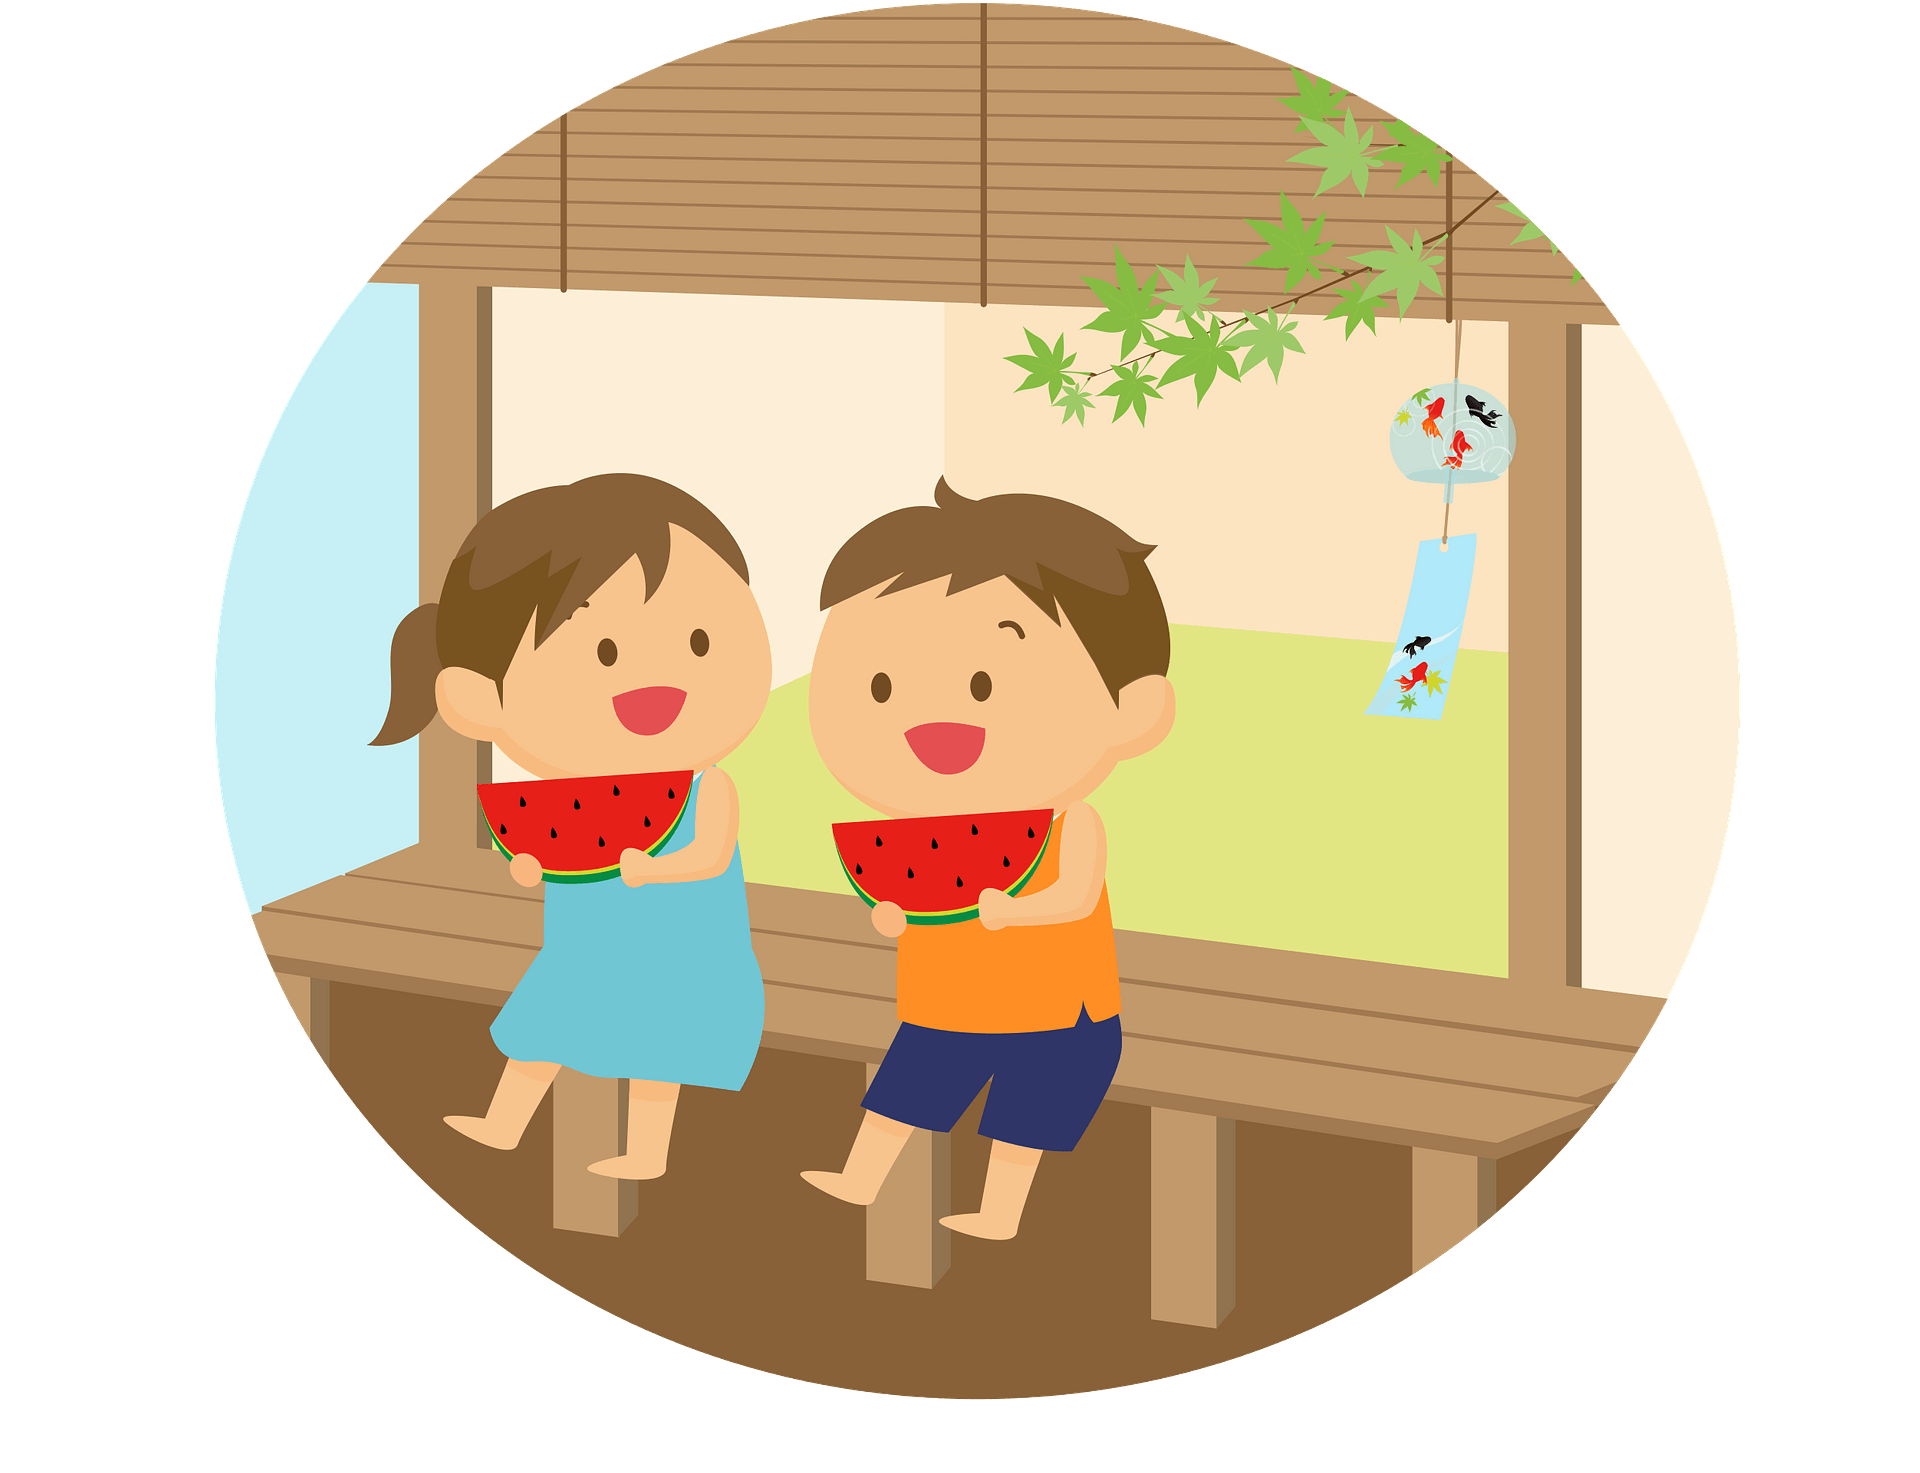 Eating Pal Clipart Of Pair Girls And Boy Food At Picnic - Children Eating  And Drinking Clipart, HD Png Download , Transparent Png Image - PNGitem